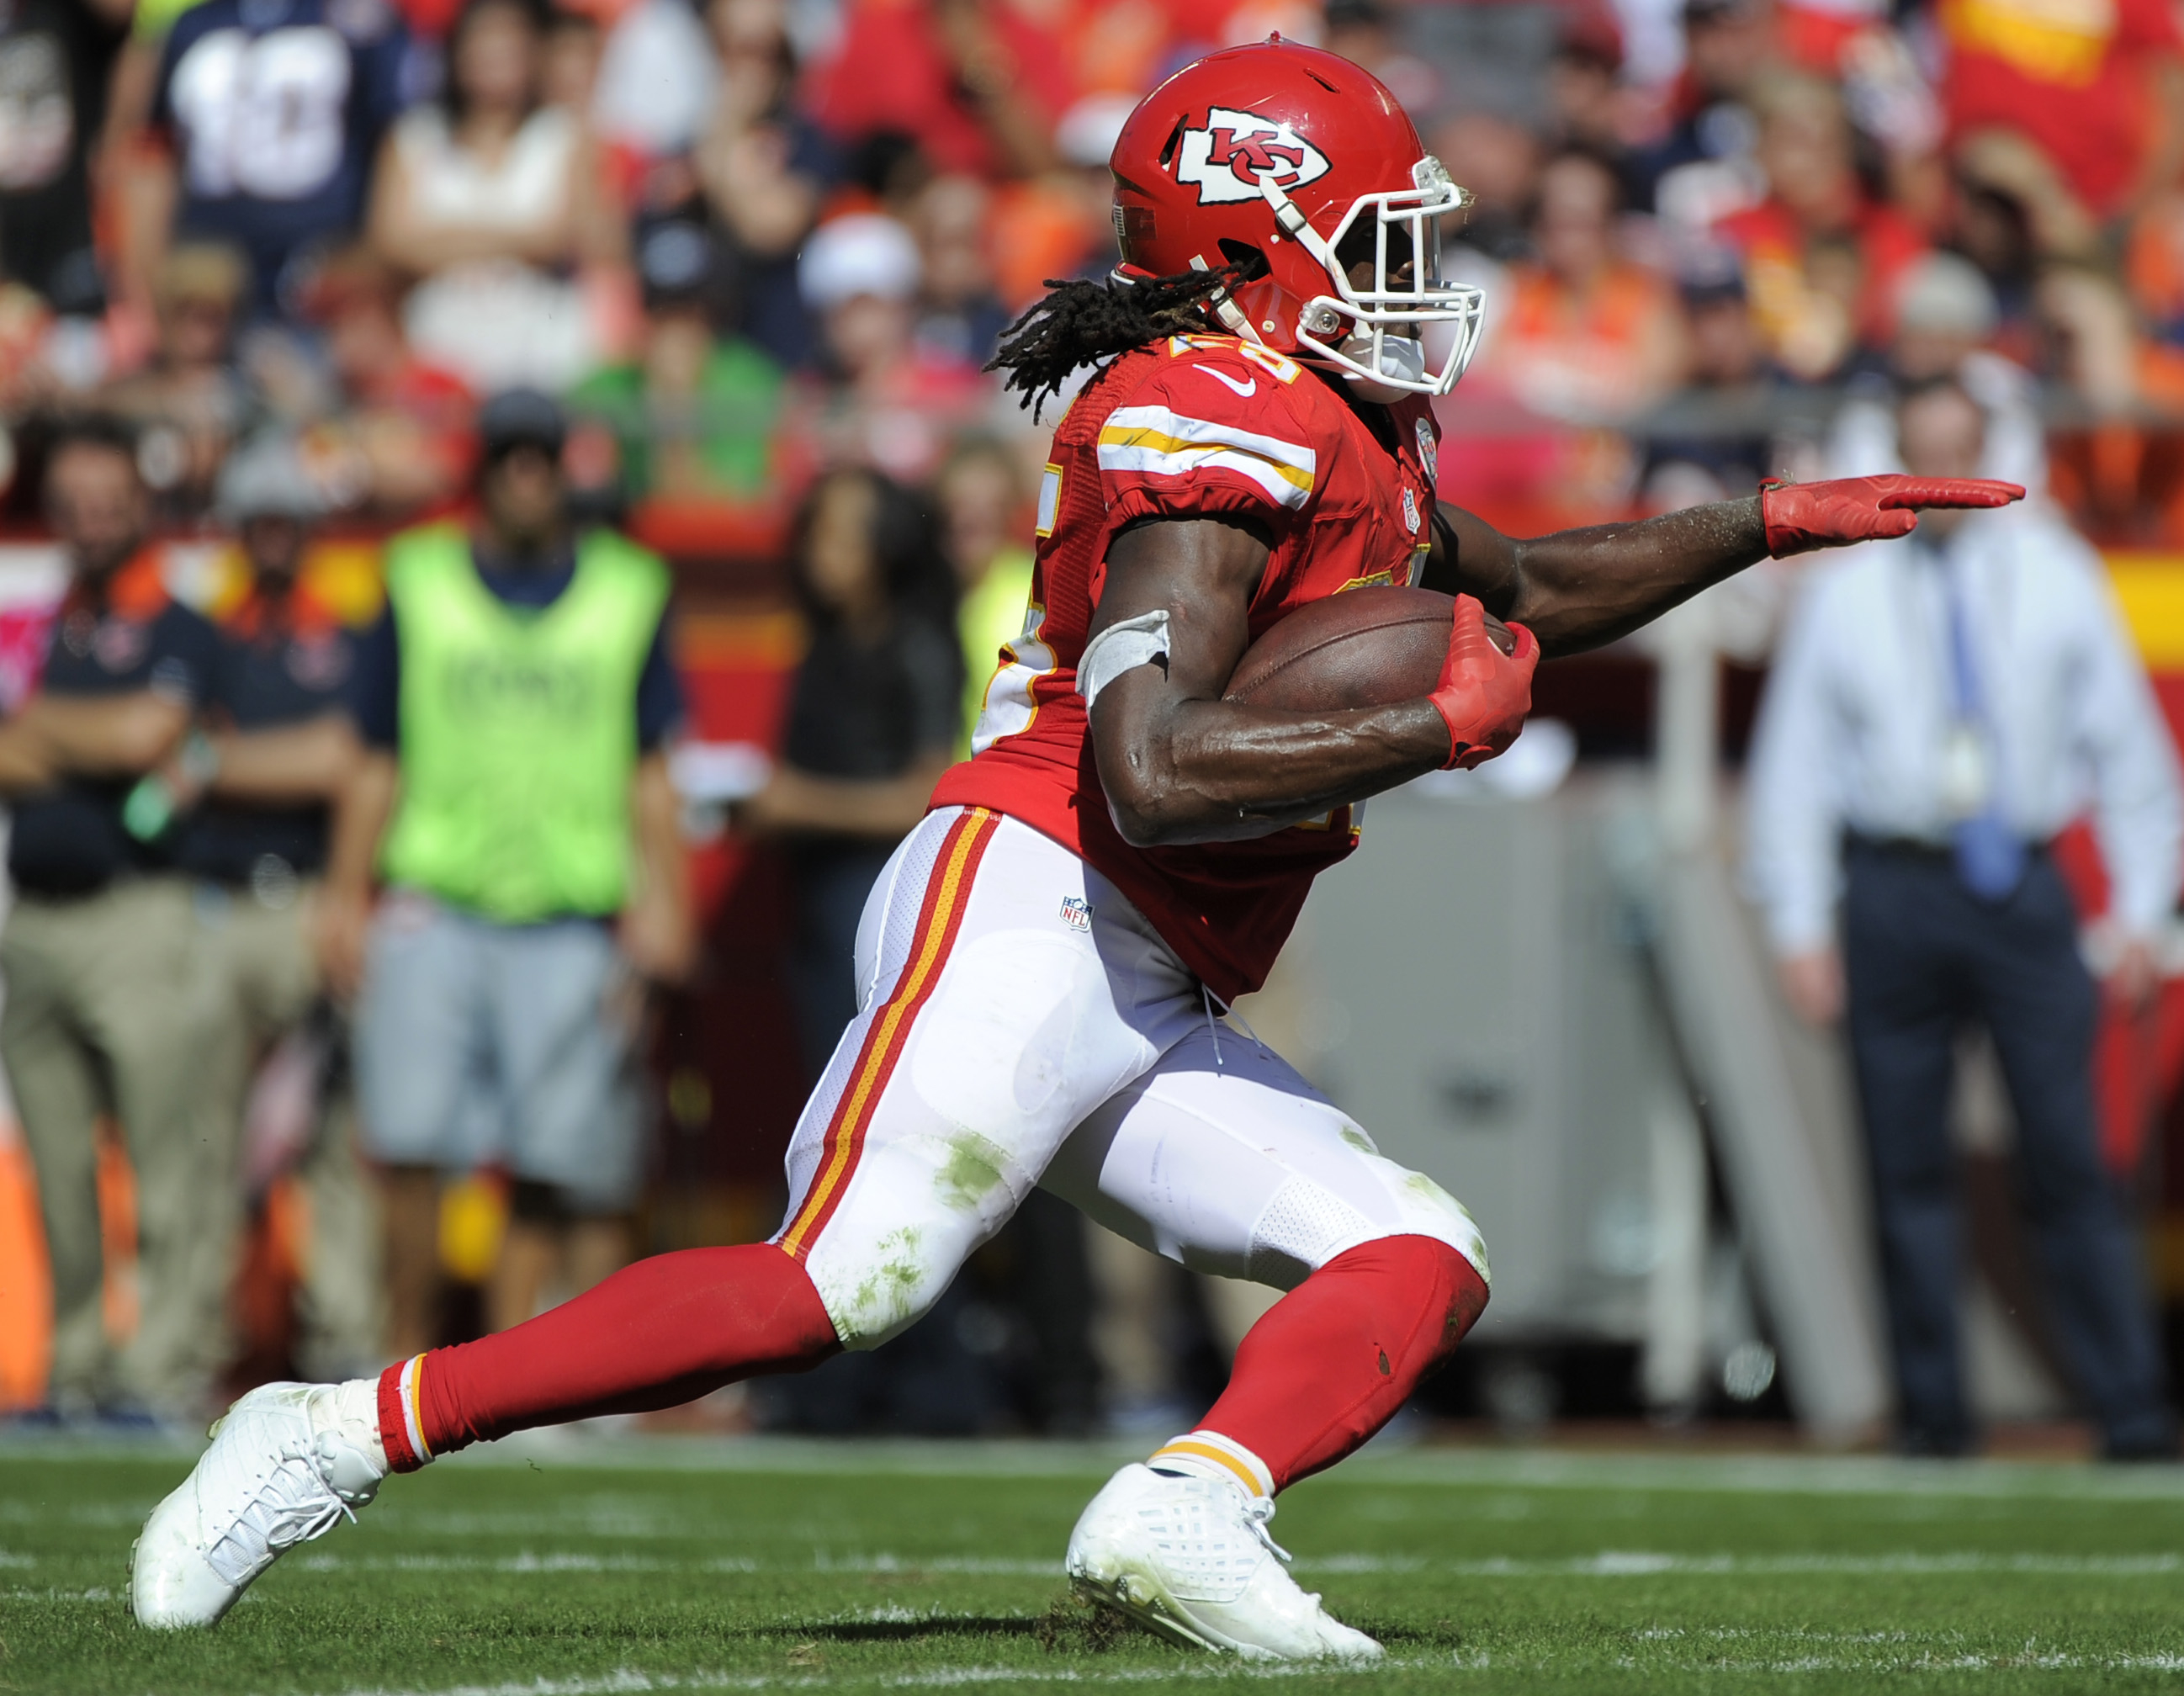 FILE- In this Oct. 11, 2015 file photo, Kansas City Chiefs running back Jamaal Charles (25) carries the ball during the second half of an NFL football game against the Chicago Bears in Kansas City, Mo. The Chiefs play the Oakland Raiders on Sunday, Oct. 1